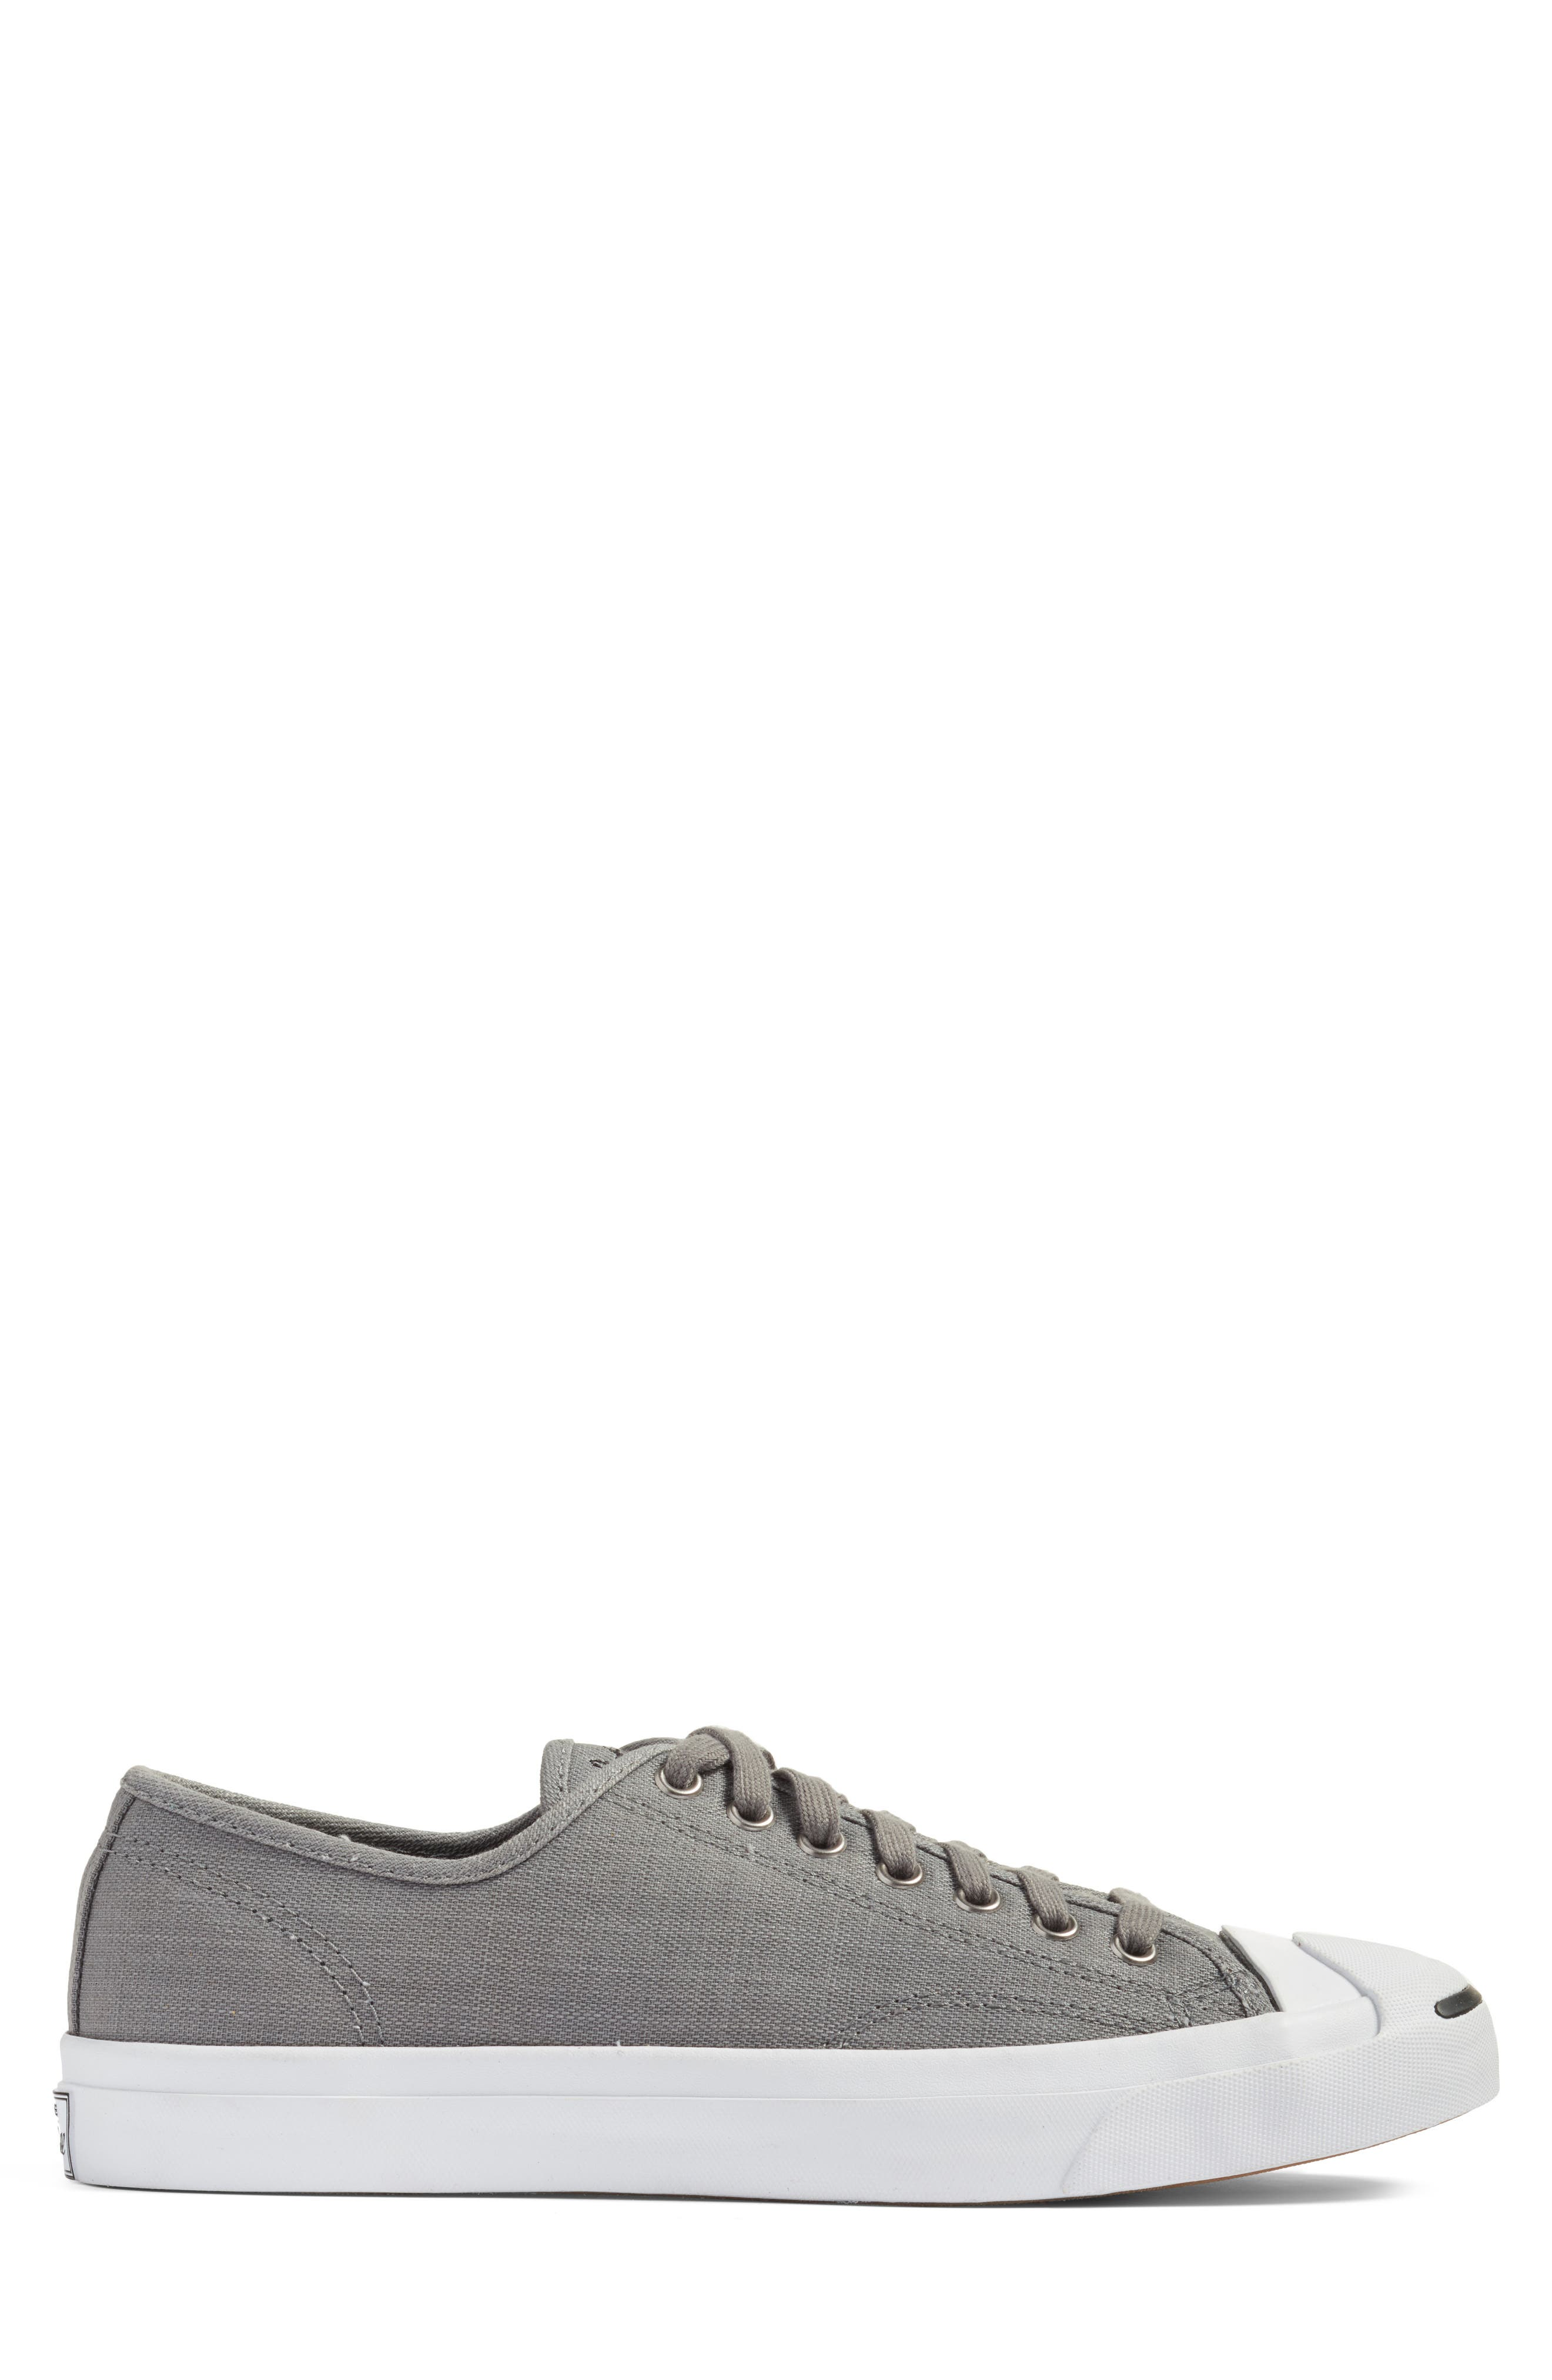 Alternate Image 3  - Converse Jack Purcell Ox Sneaker (Men)